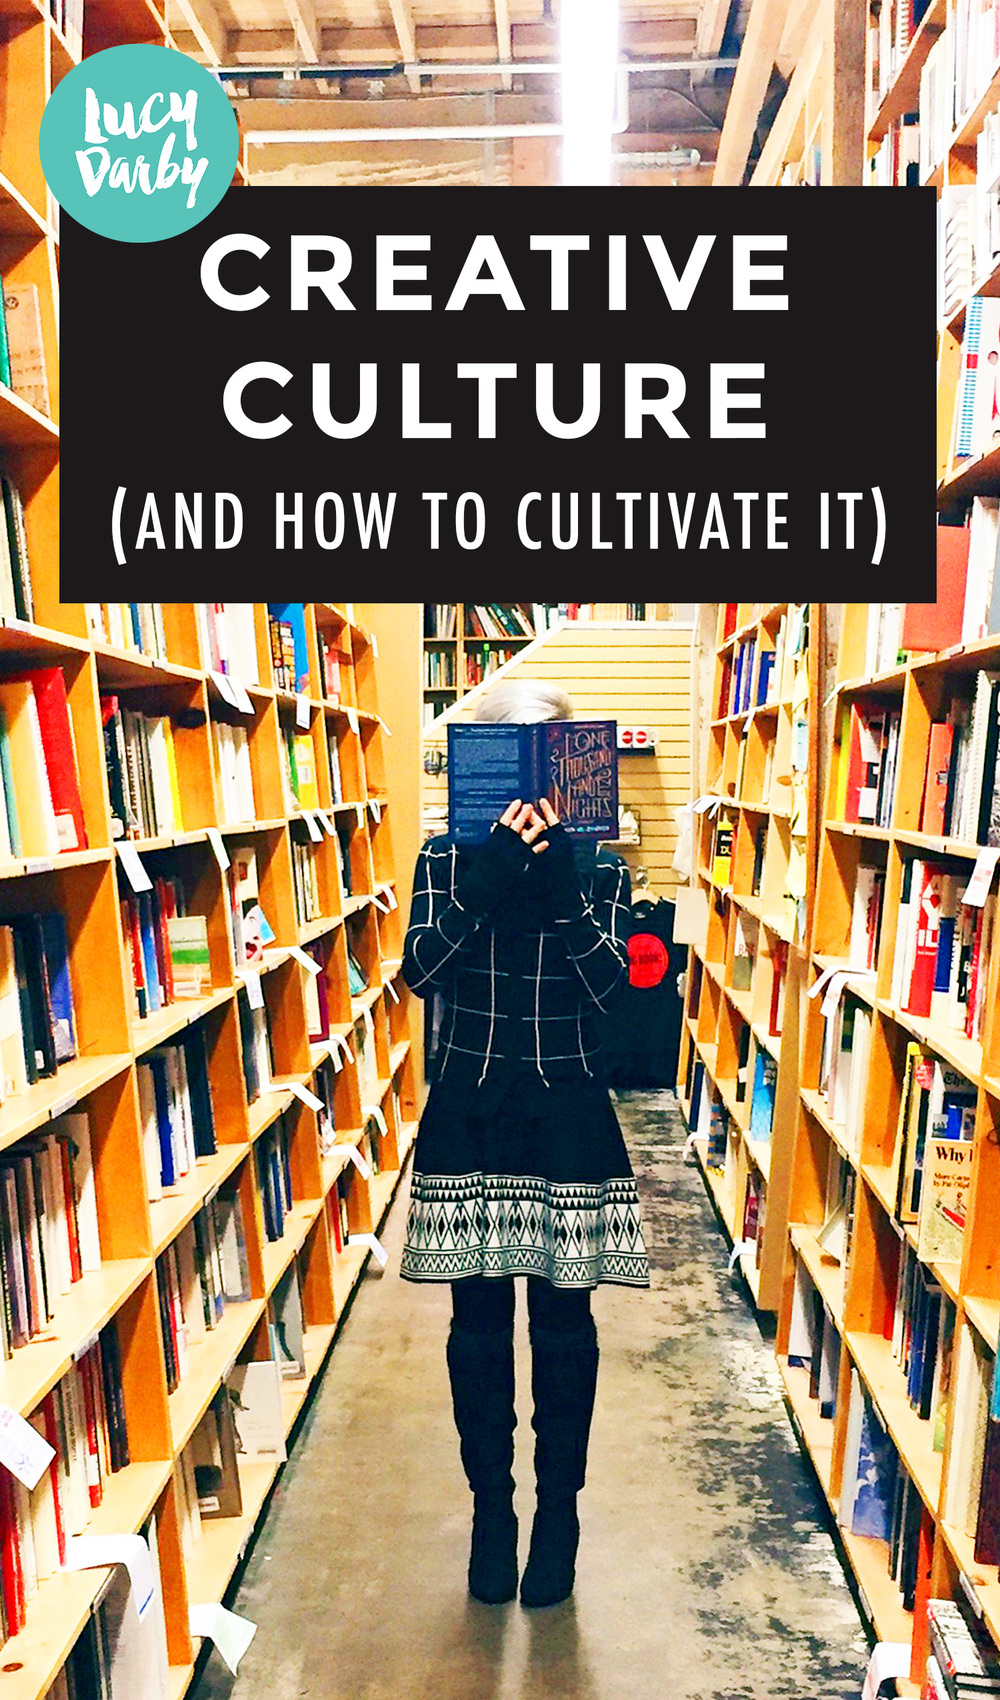 How To Cultivate Creative Culture